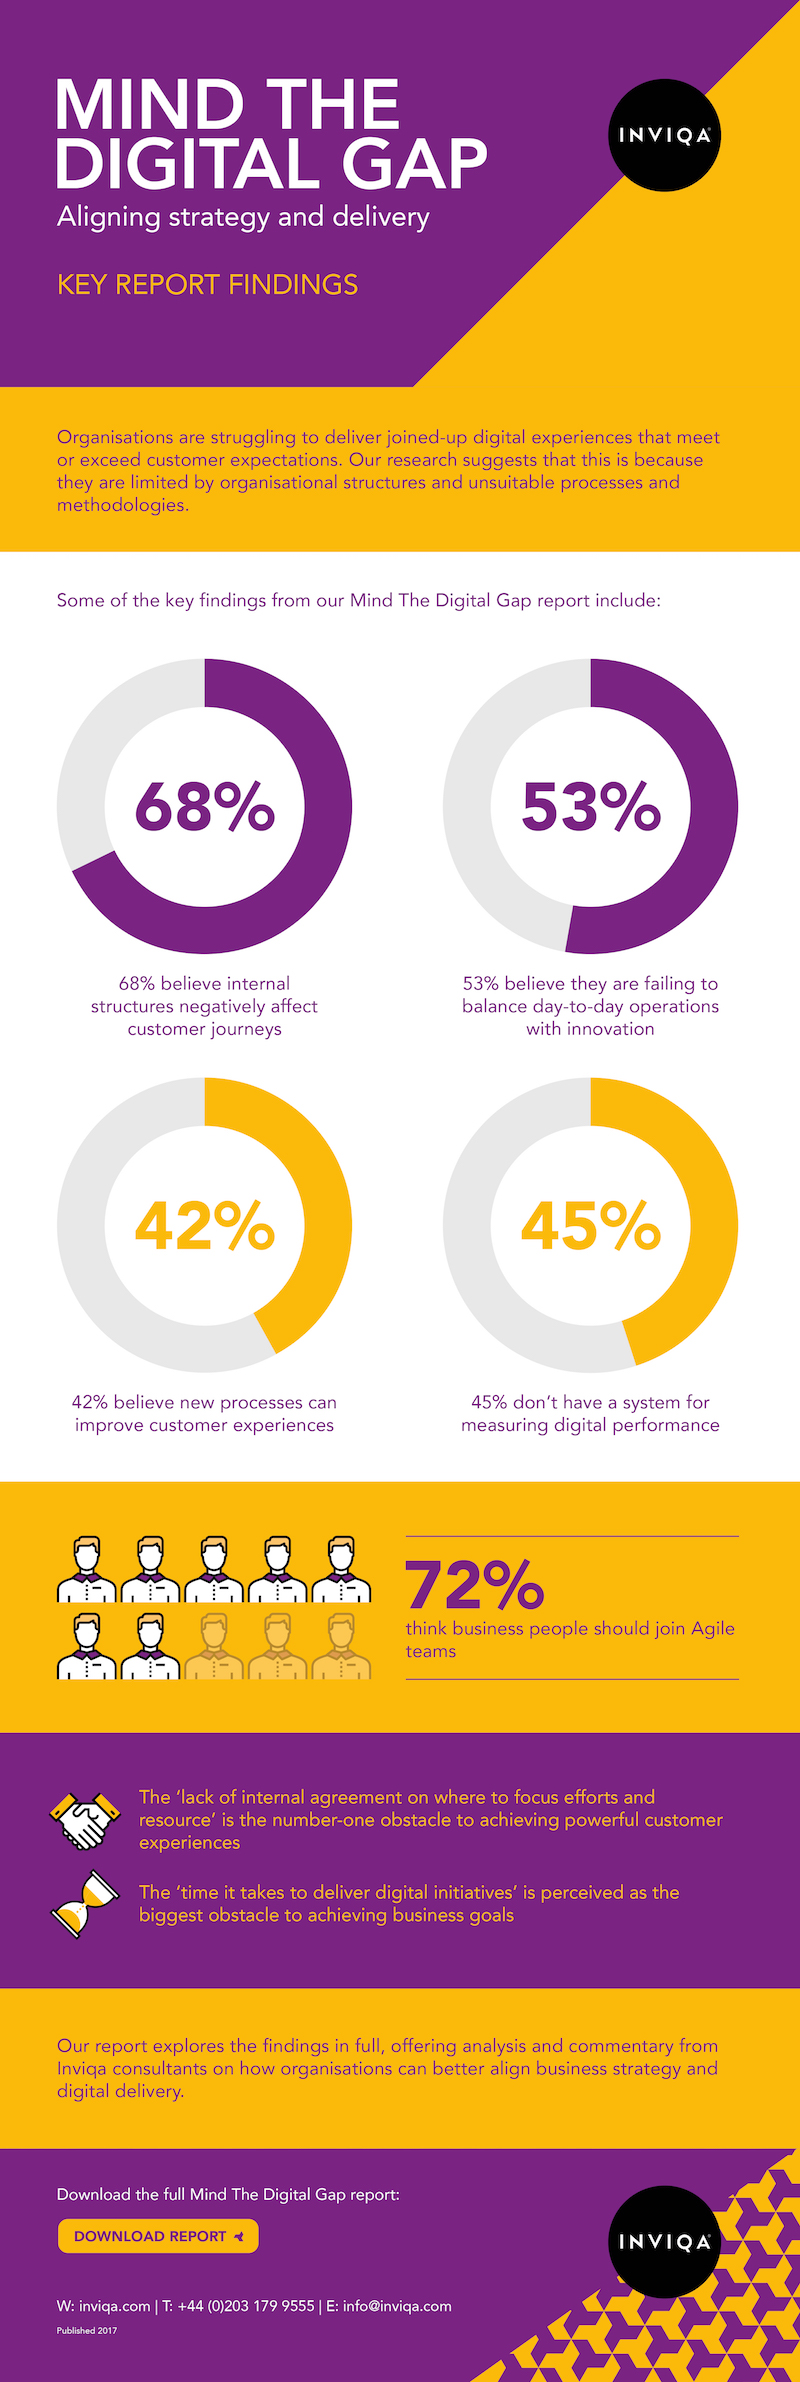 Mind The Digital Gap infographic